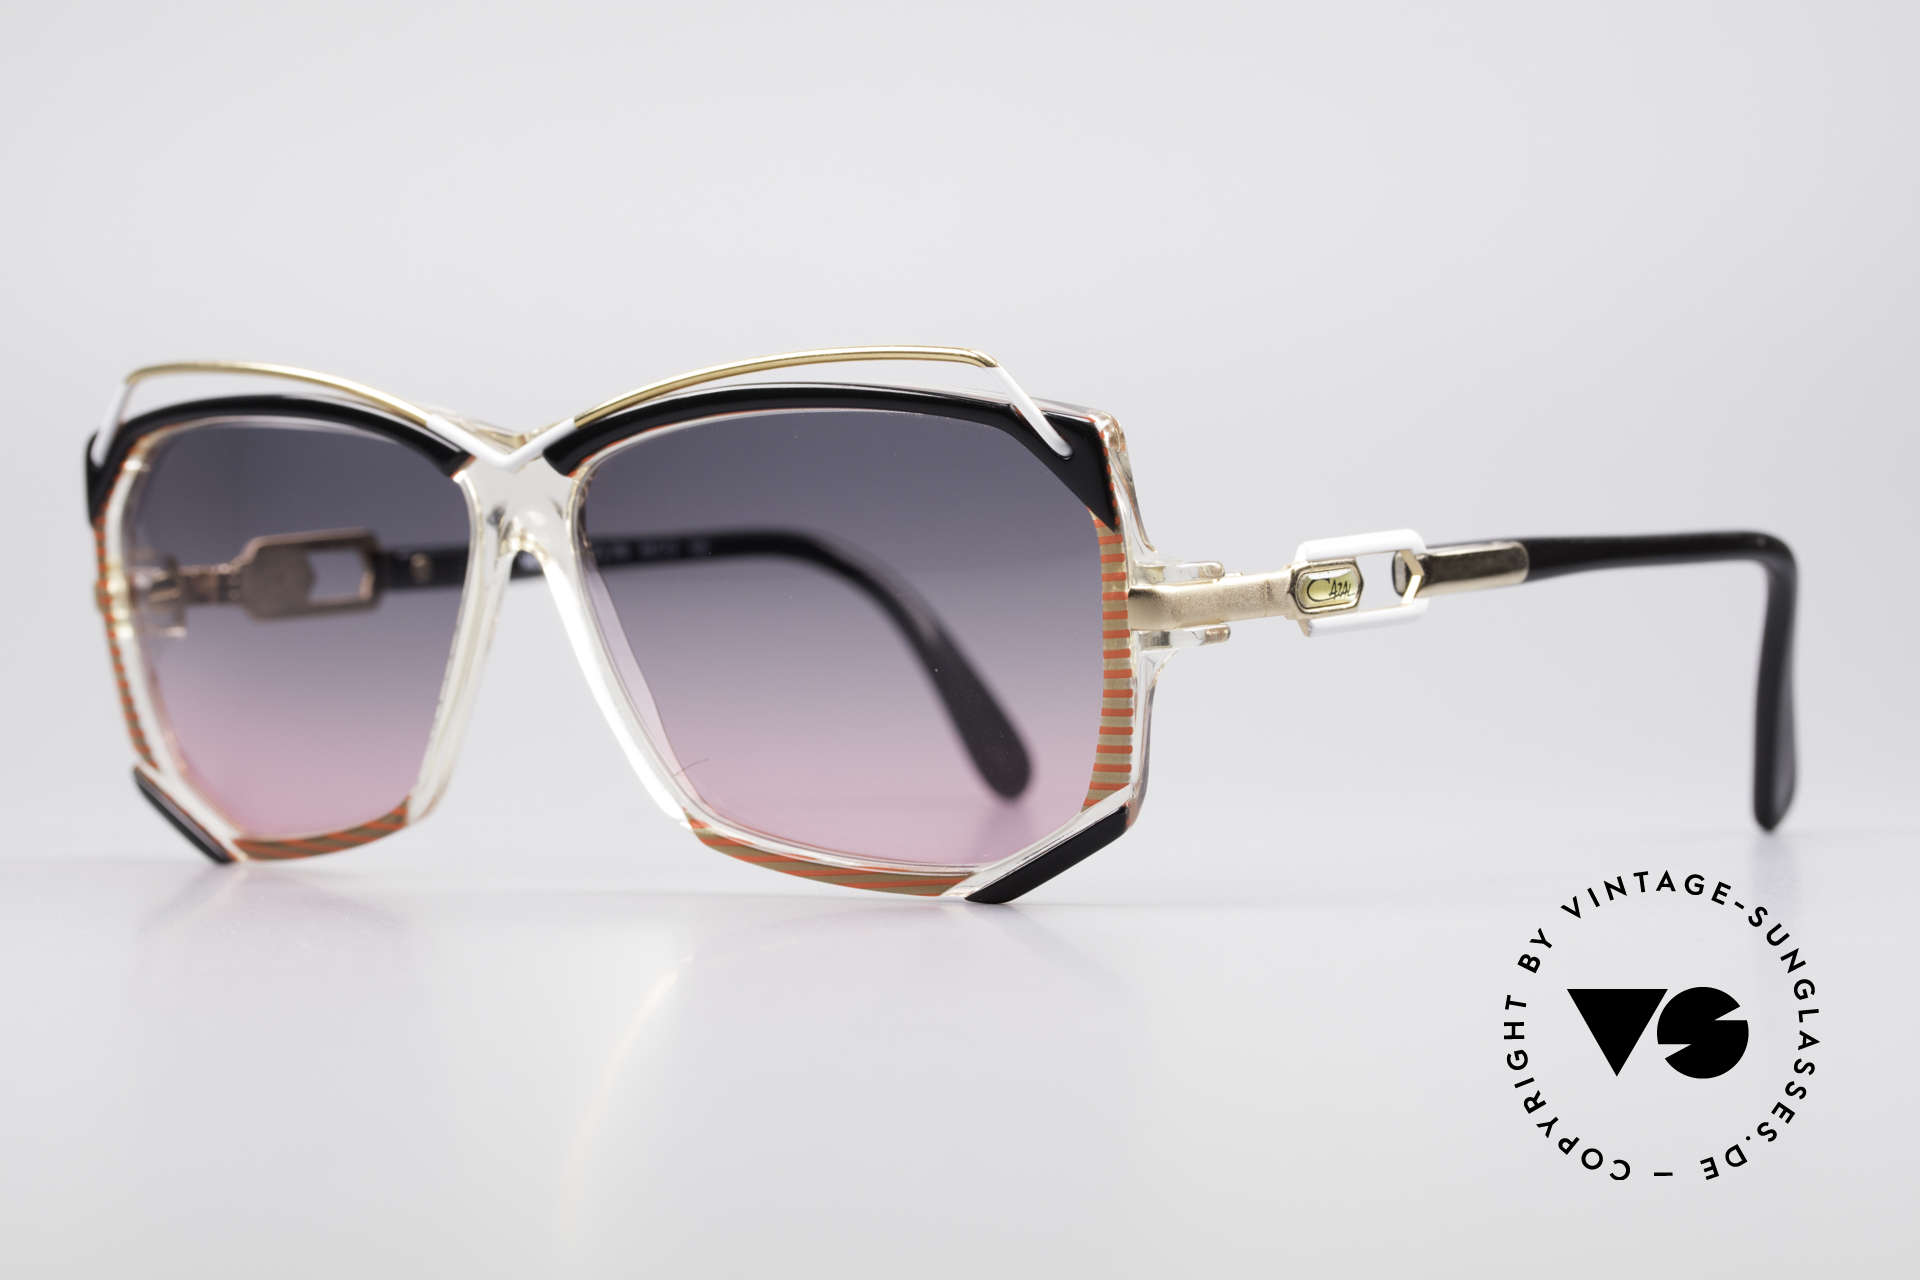 Cazal 188 Vintage Sunglasses Ladies, inventive combination of synthetic material & metal, Made for Women